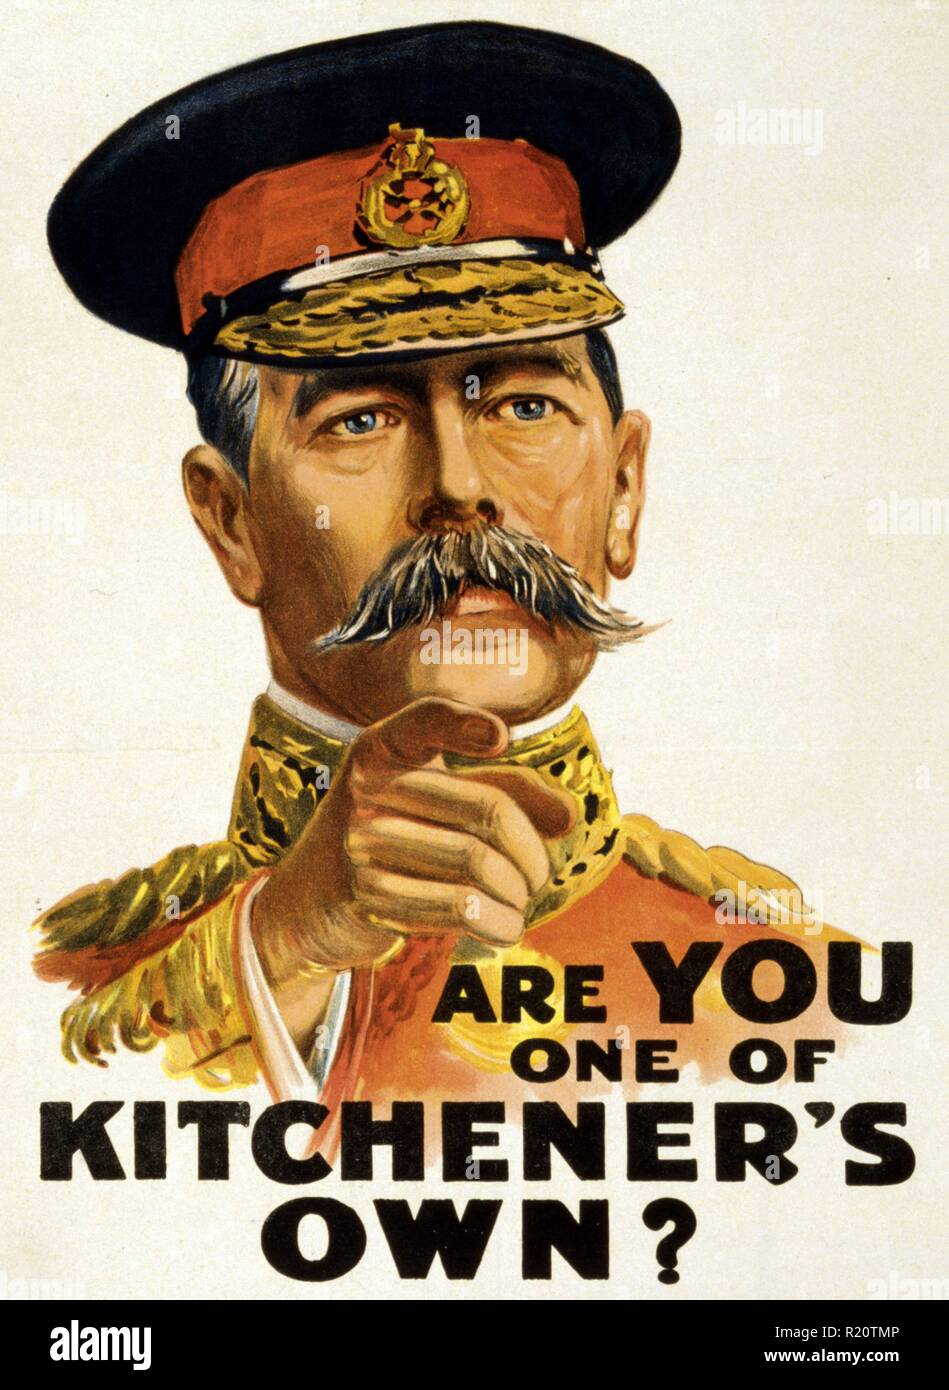 Russian poster shows portrait of Lord Kitchener pointing his finger. Dated 1915 - Stock Image